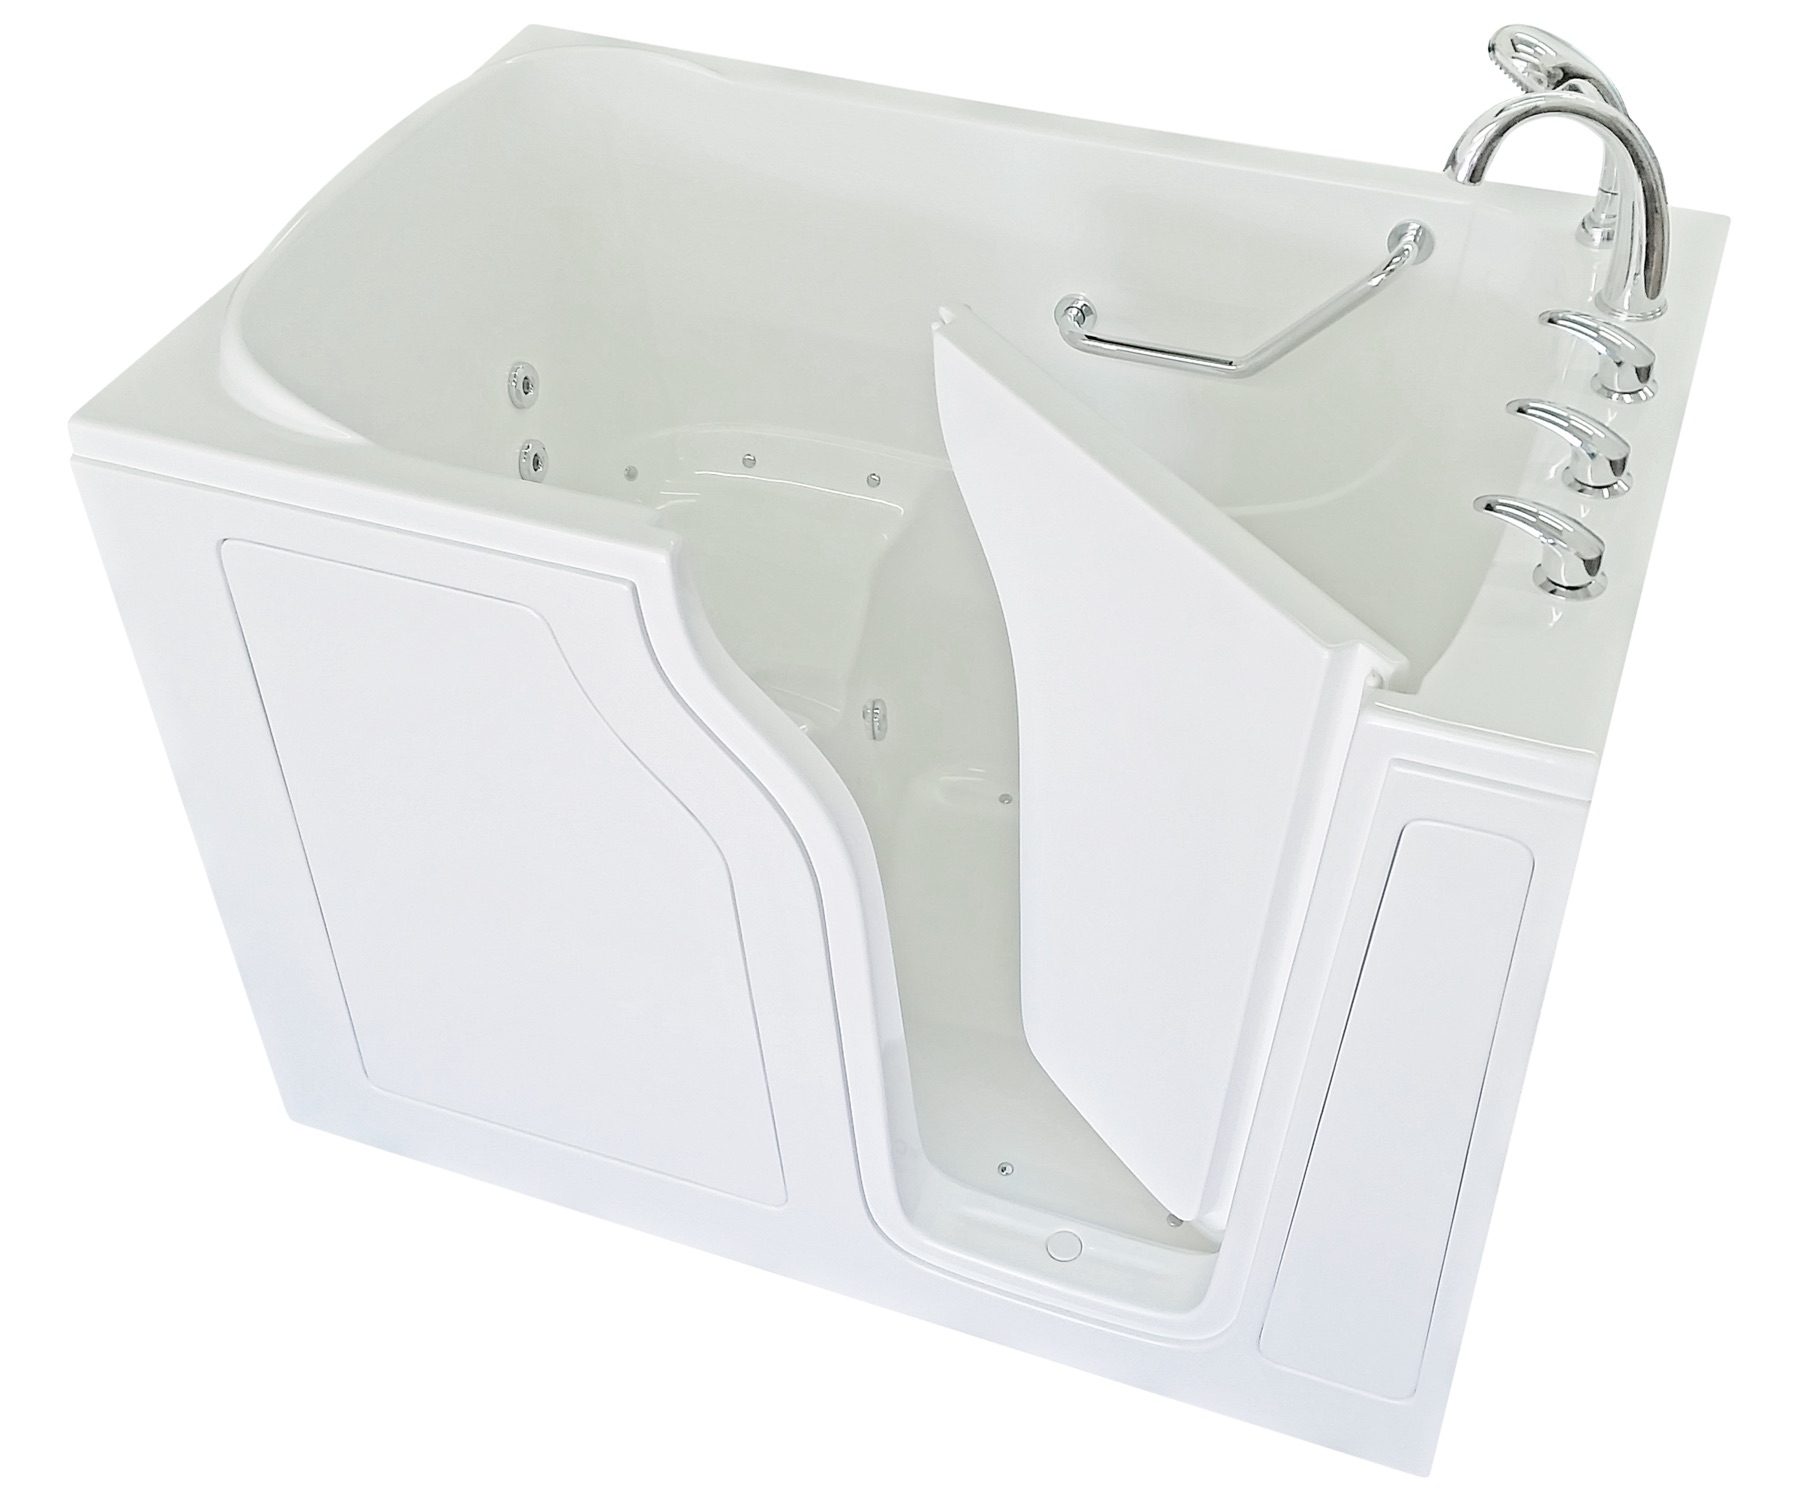 1800 Jacuzzi Walk In Tubs